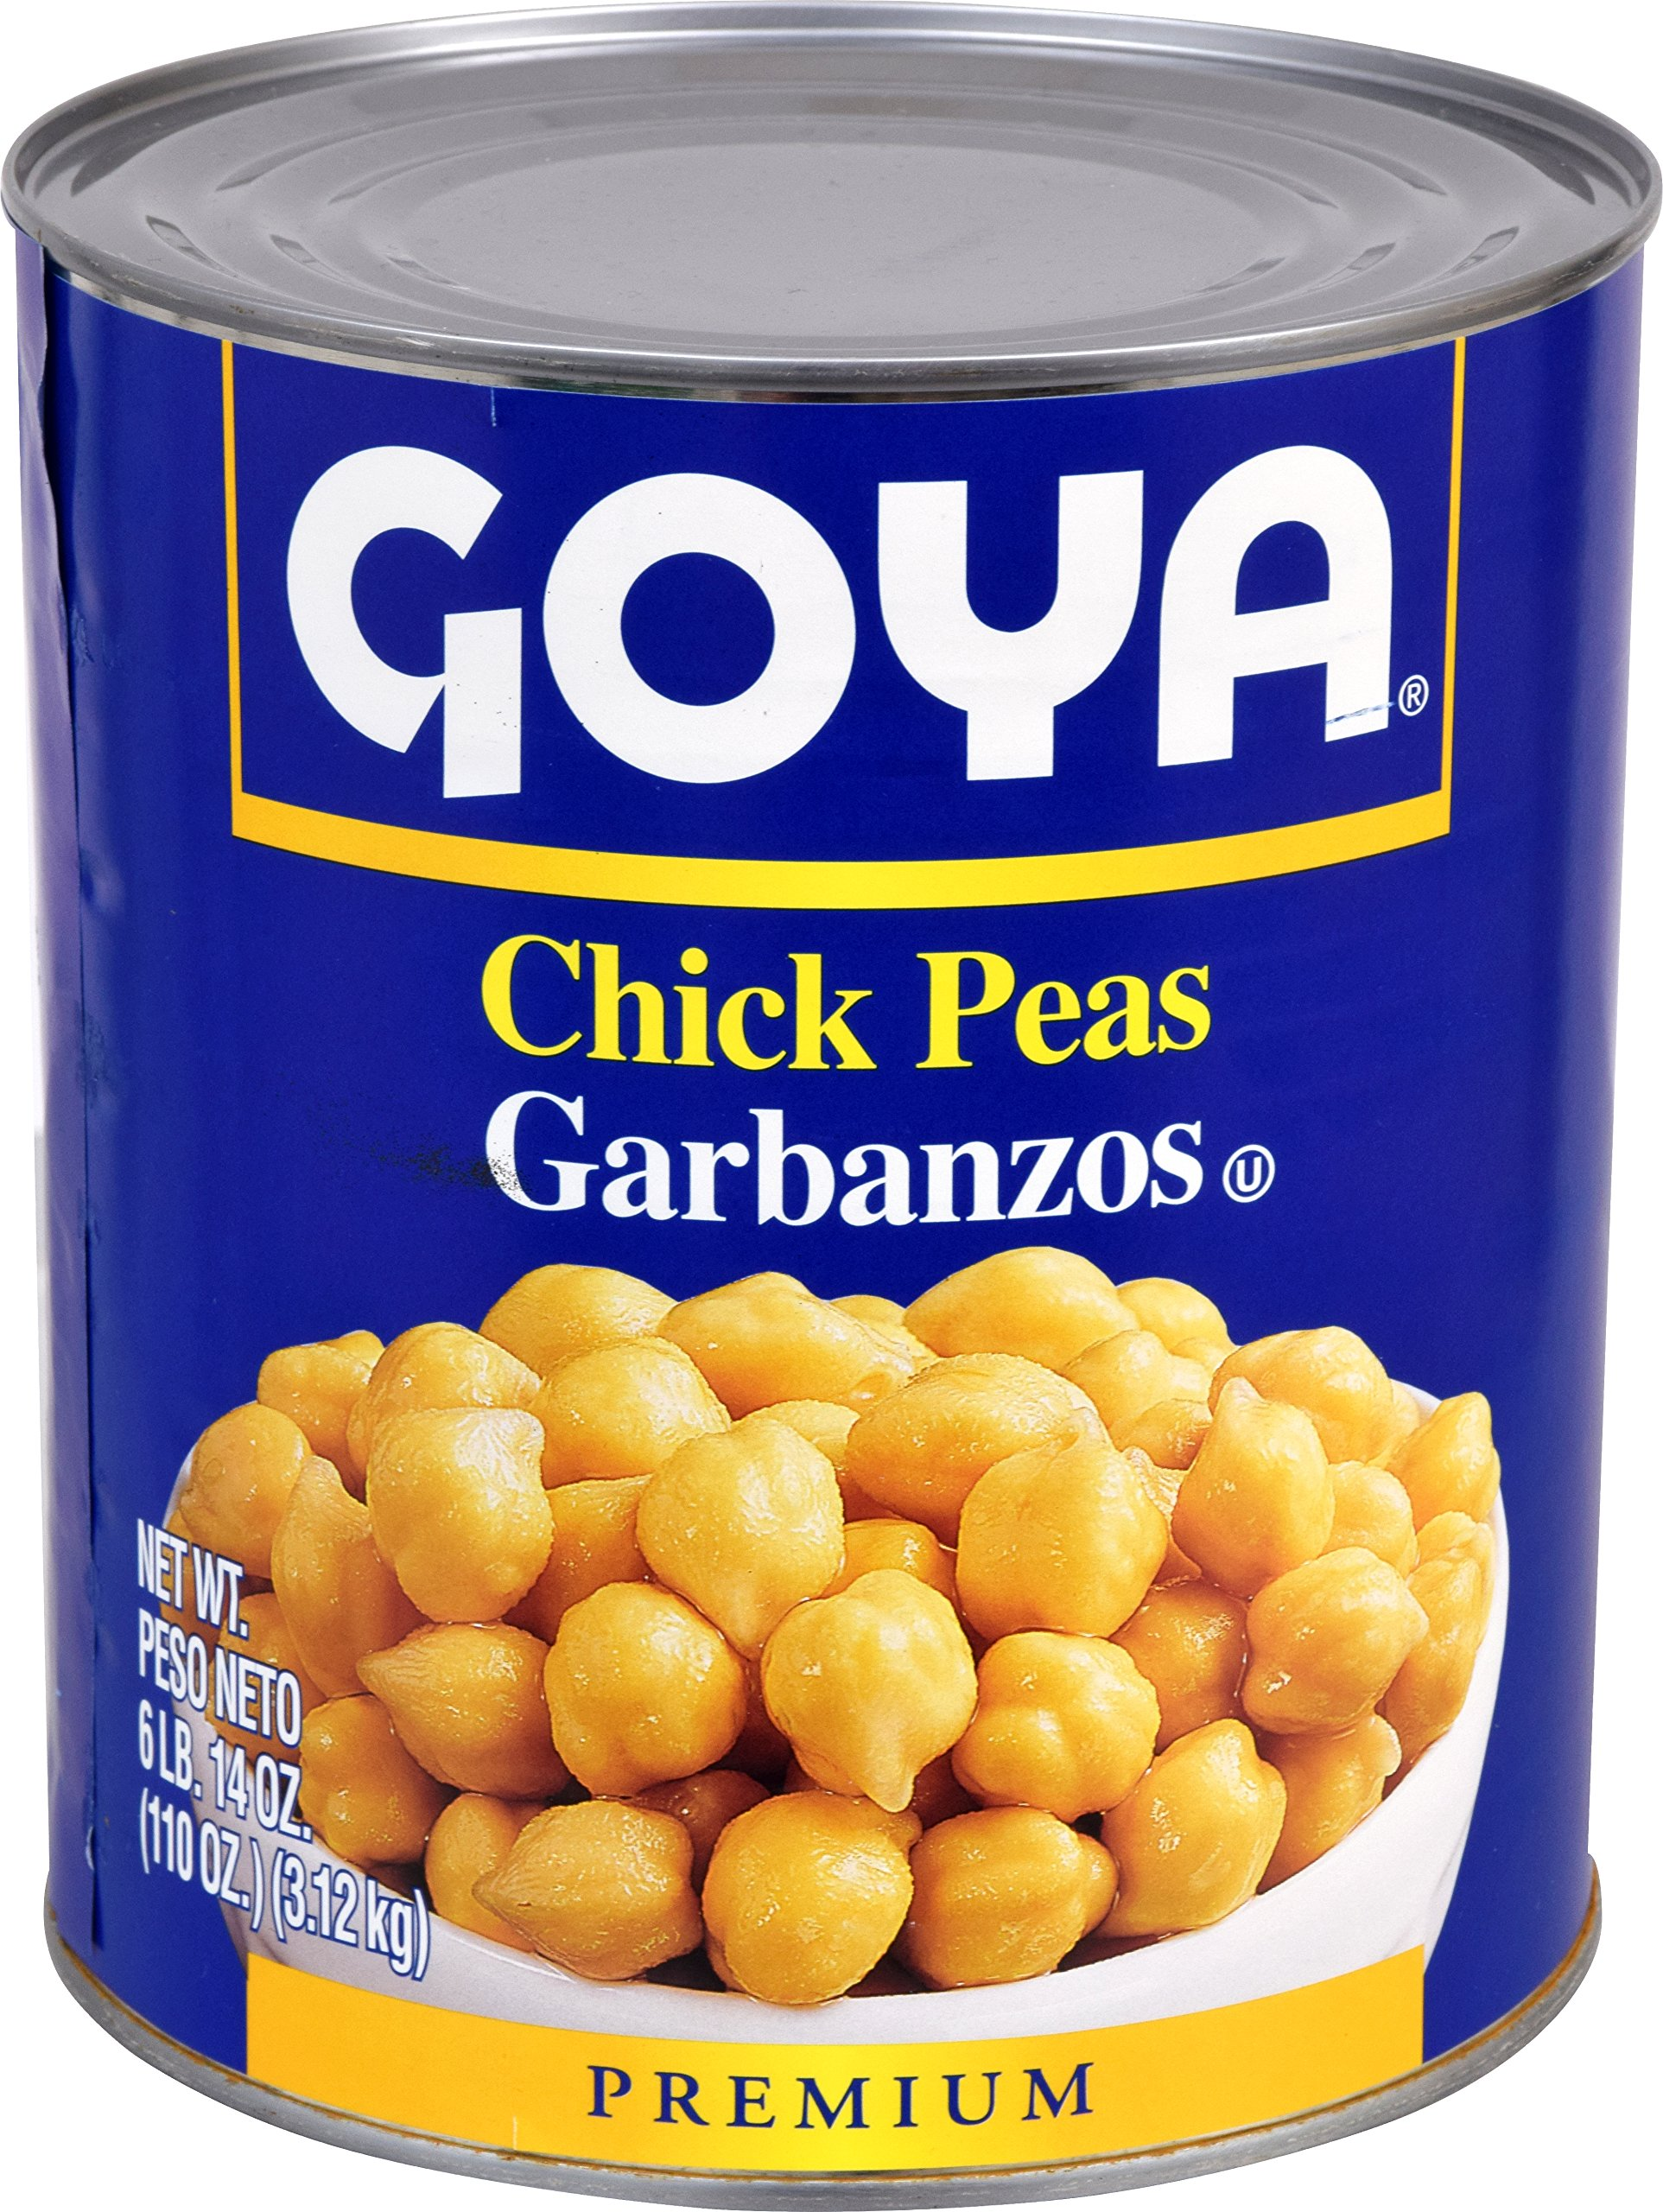 Goya Foods Chick Peas, 110 Ounce (Pack of 6) by Goya